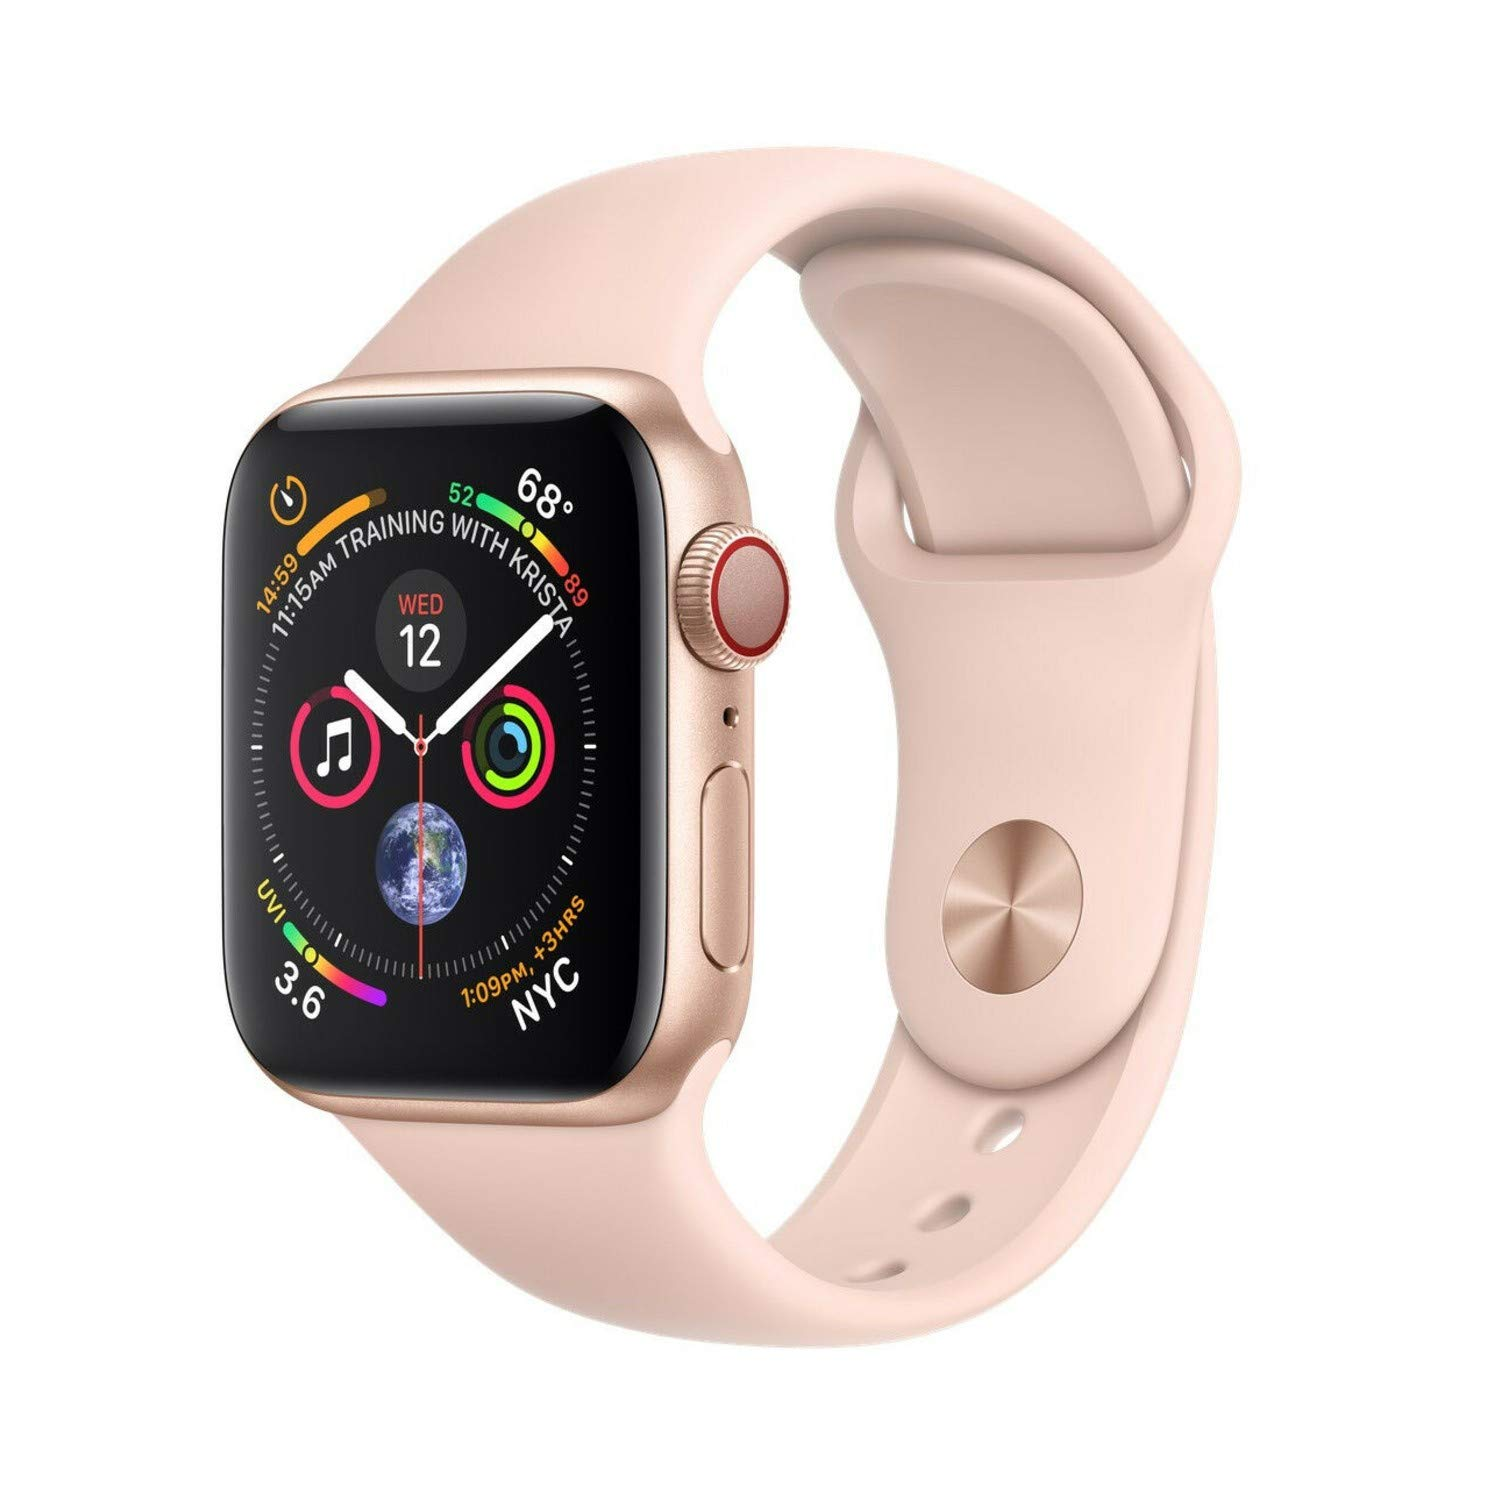 Apple Watch Series 4 (GPS + Cellular, 40mm) - Gold Aluminium Case with Pink Sand Sport Band (Renewed) by Apple